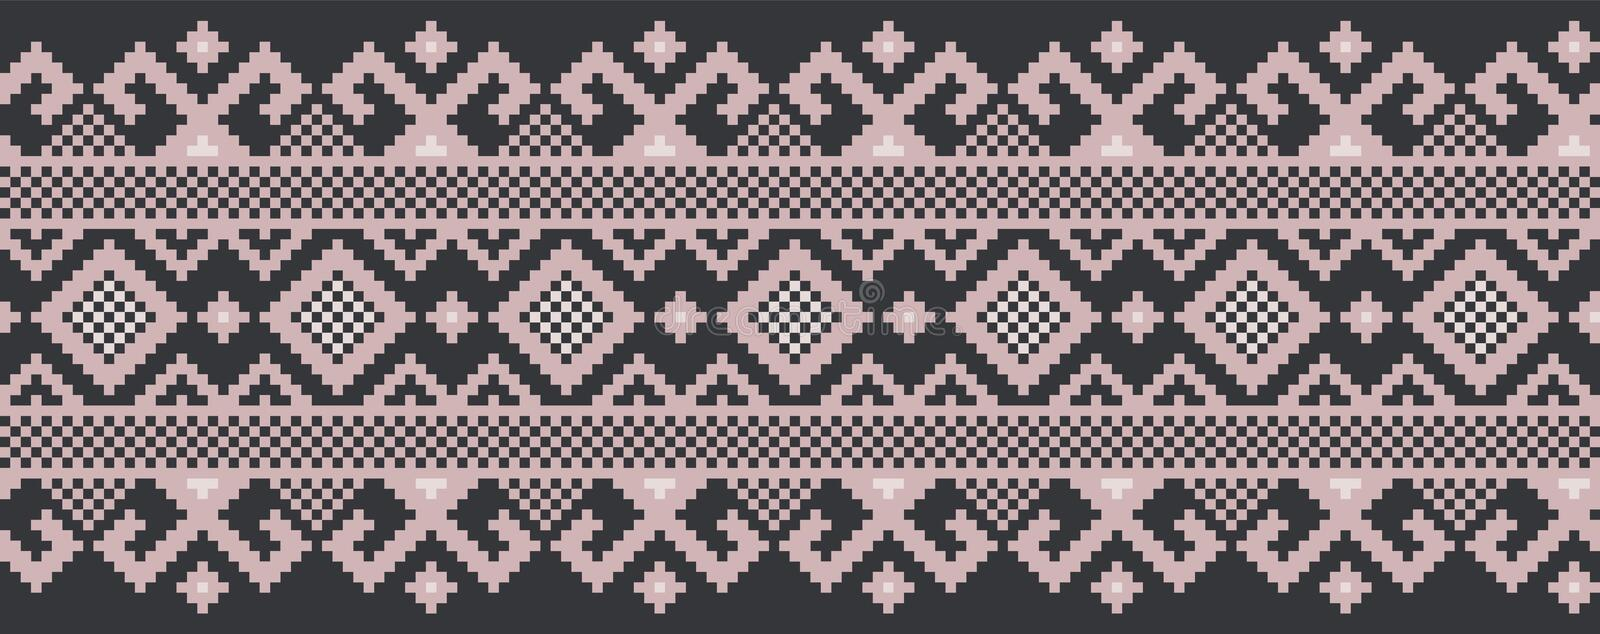 Vector illustration of Ukrainian folk seamless pattern ornament. Ethnic ornament. Border element. Traditional Ukrainian. Belarusian folk art knitted embroidery vector illustration